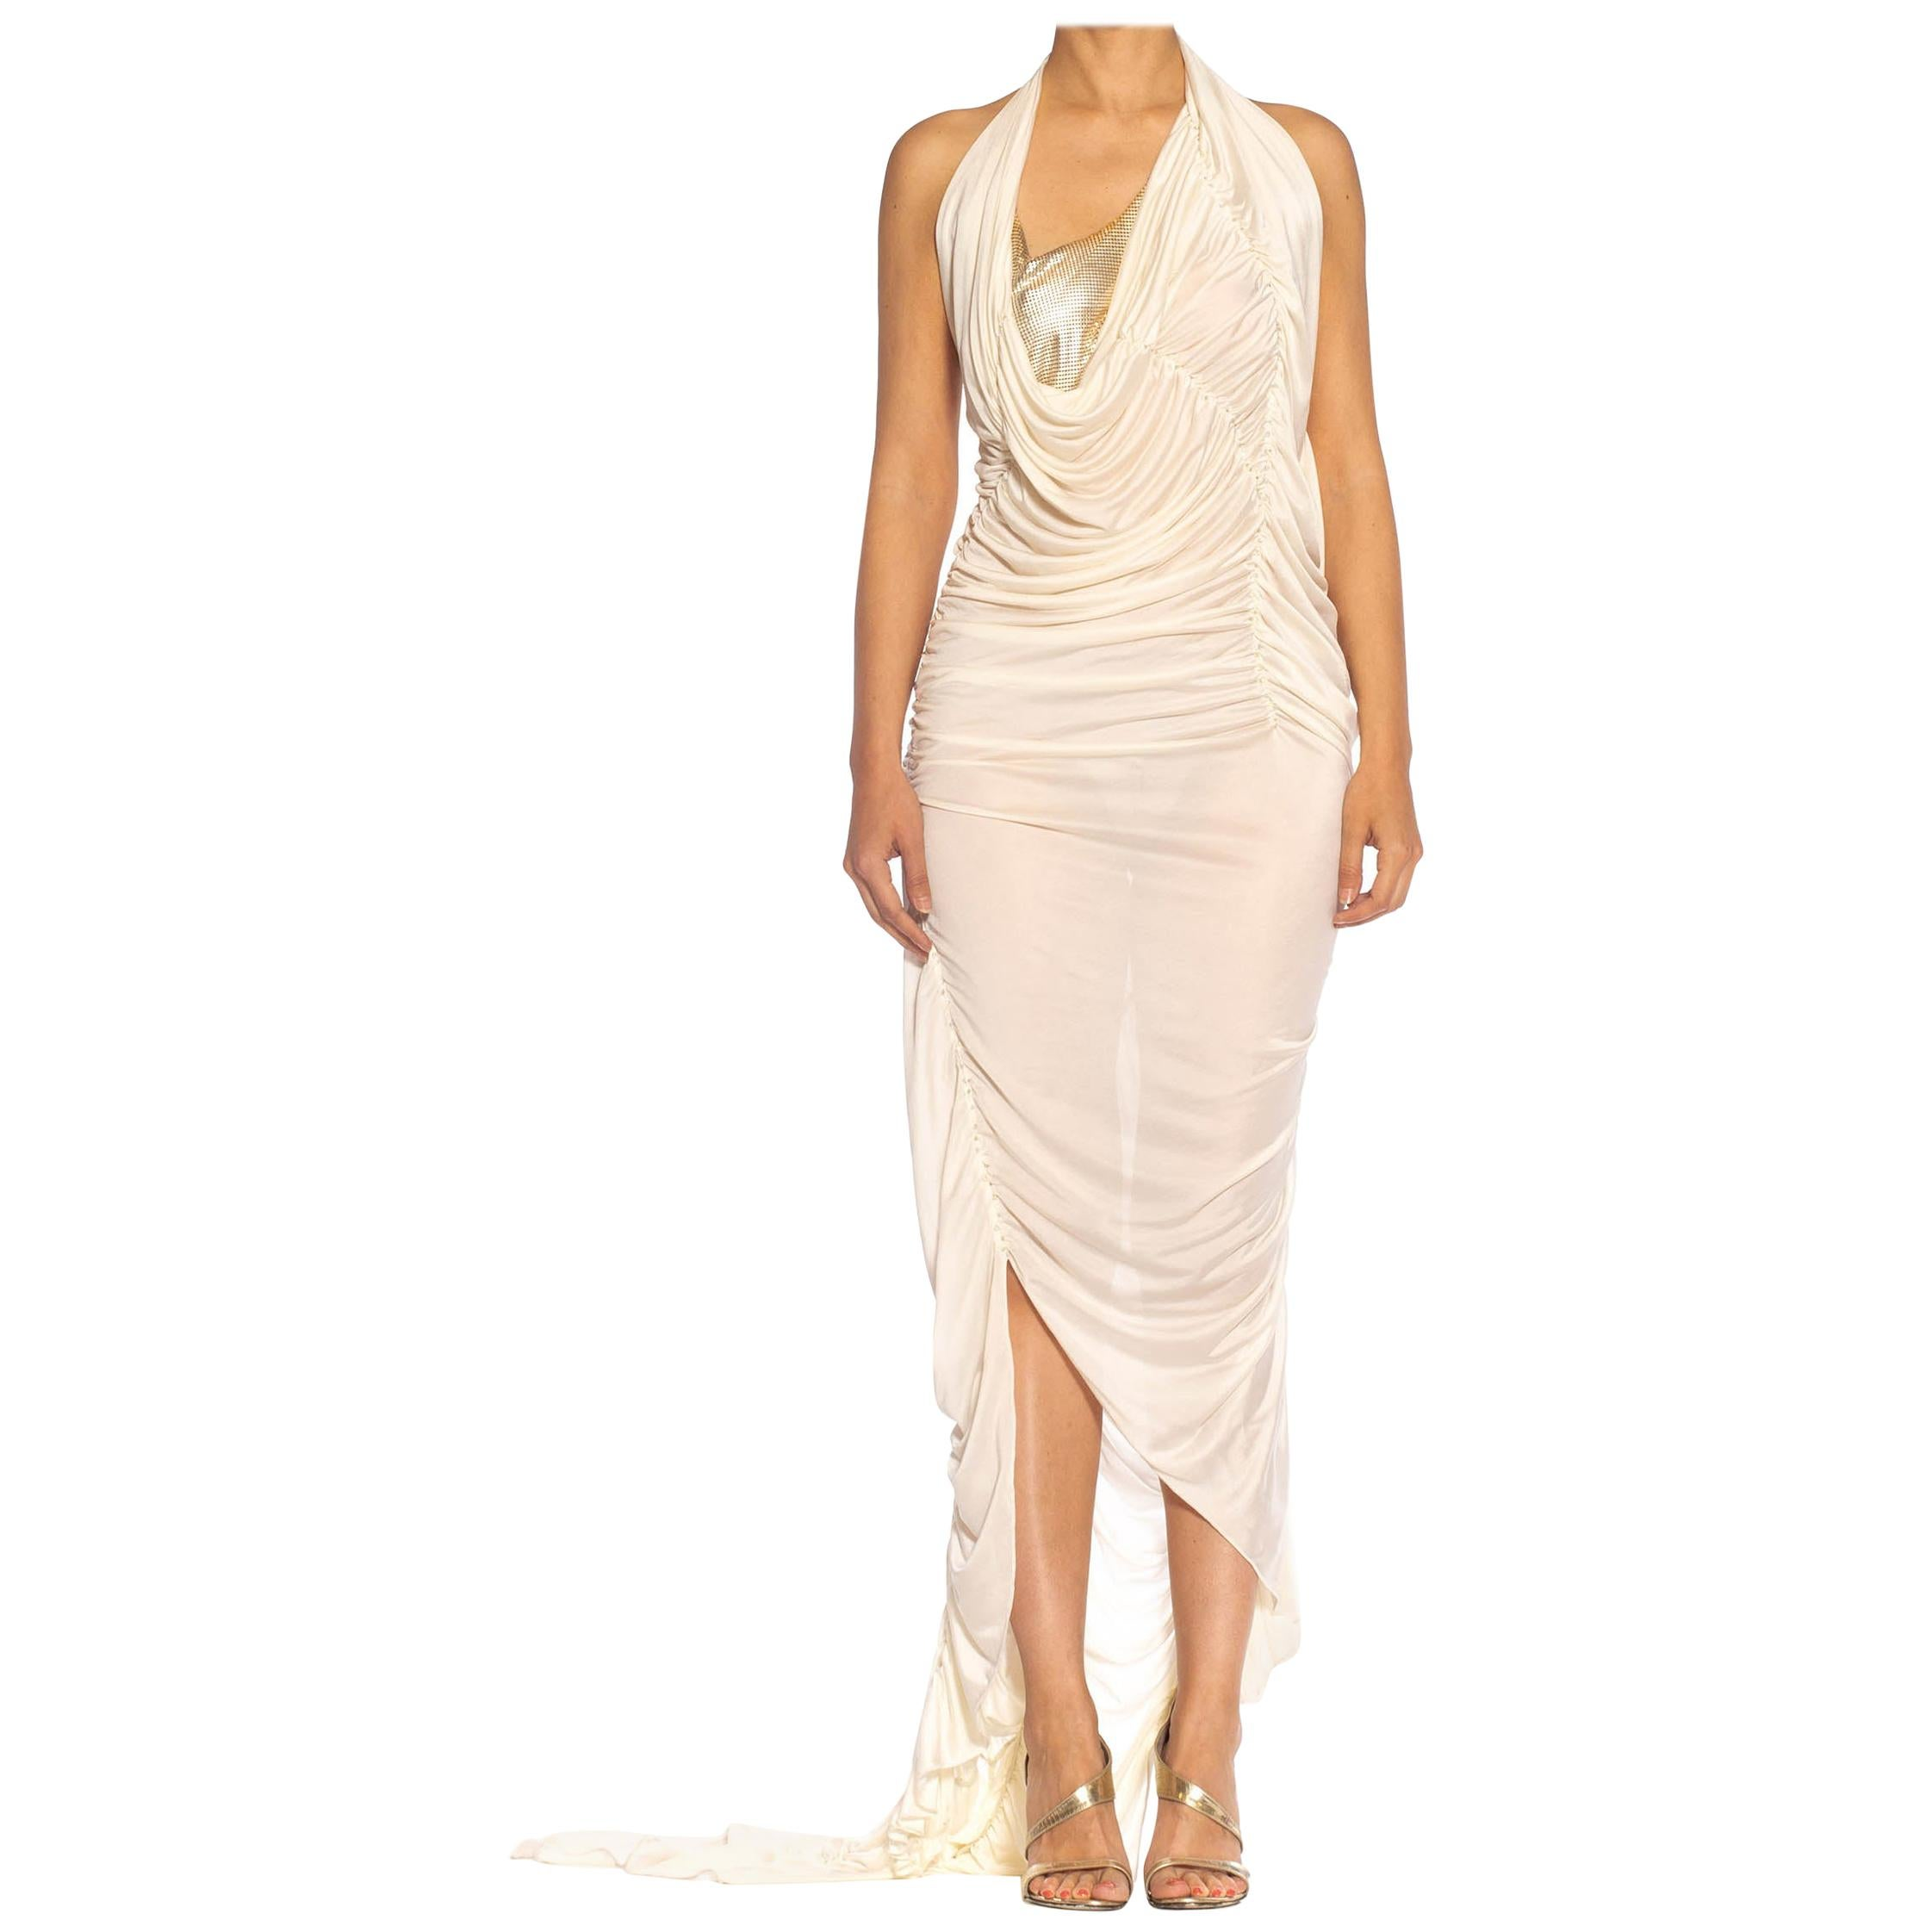 Ivory Rayon Blend Jersey Asymmetrically Draped Sexy Gown With Metal Mesh & Swar